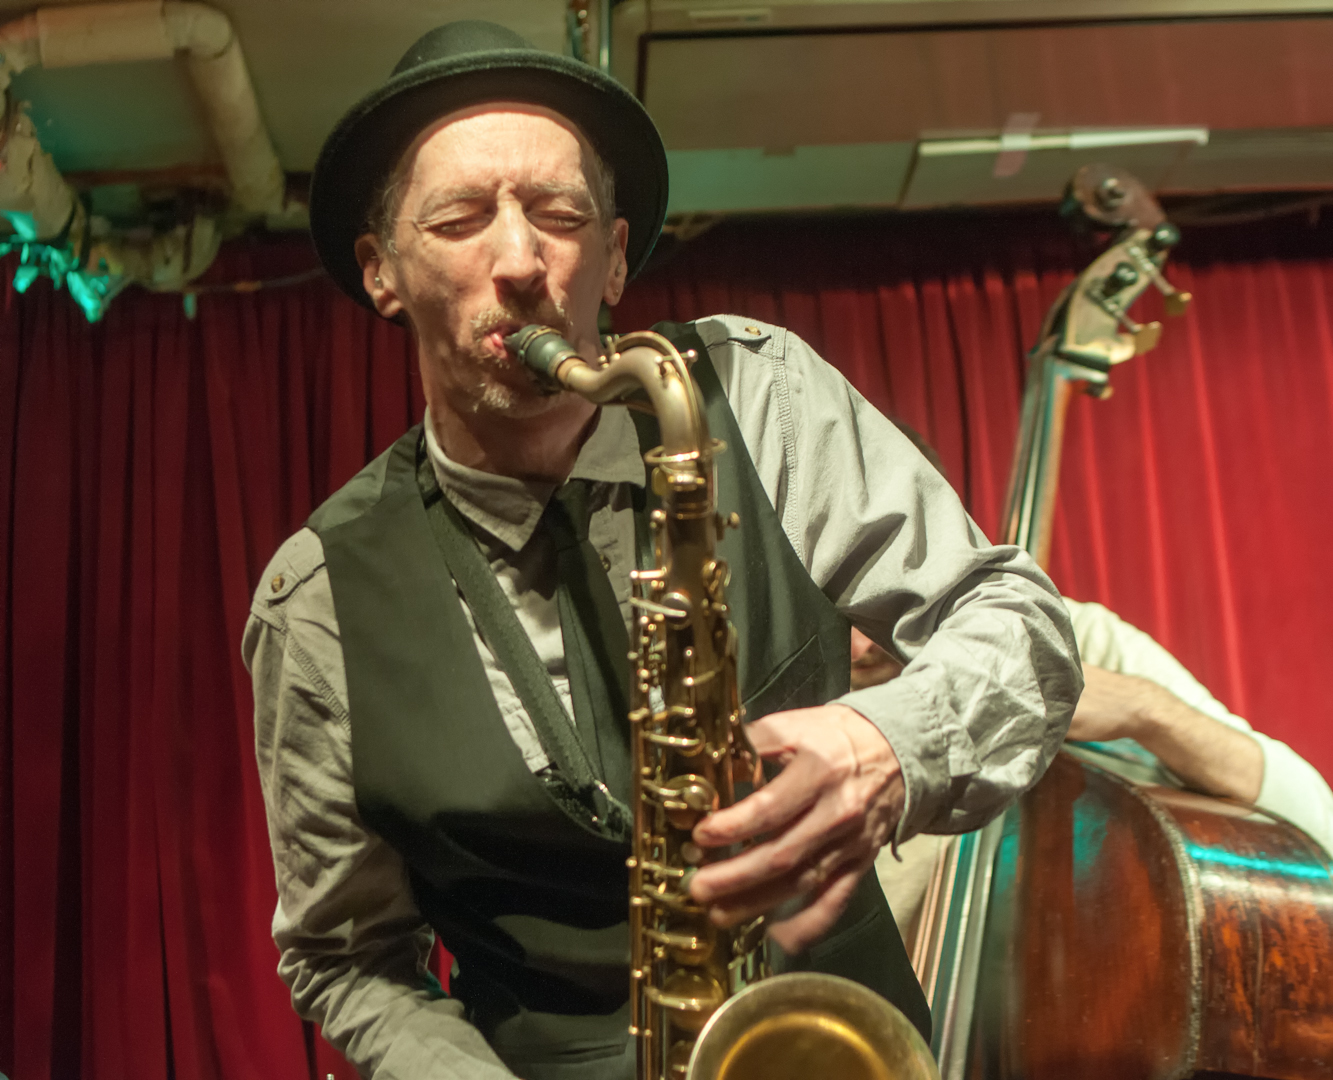 Ellery Eskelin with the David Liebman Quintet at the Cornelia Street Cafe